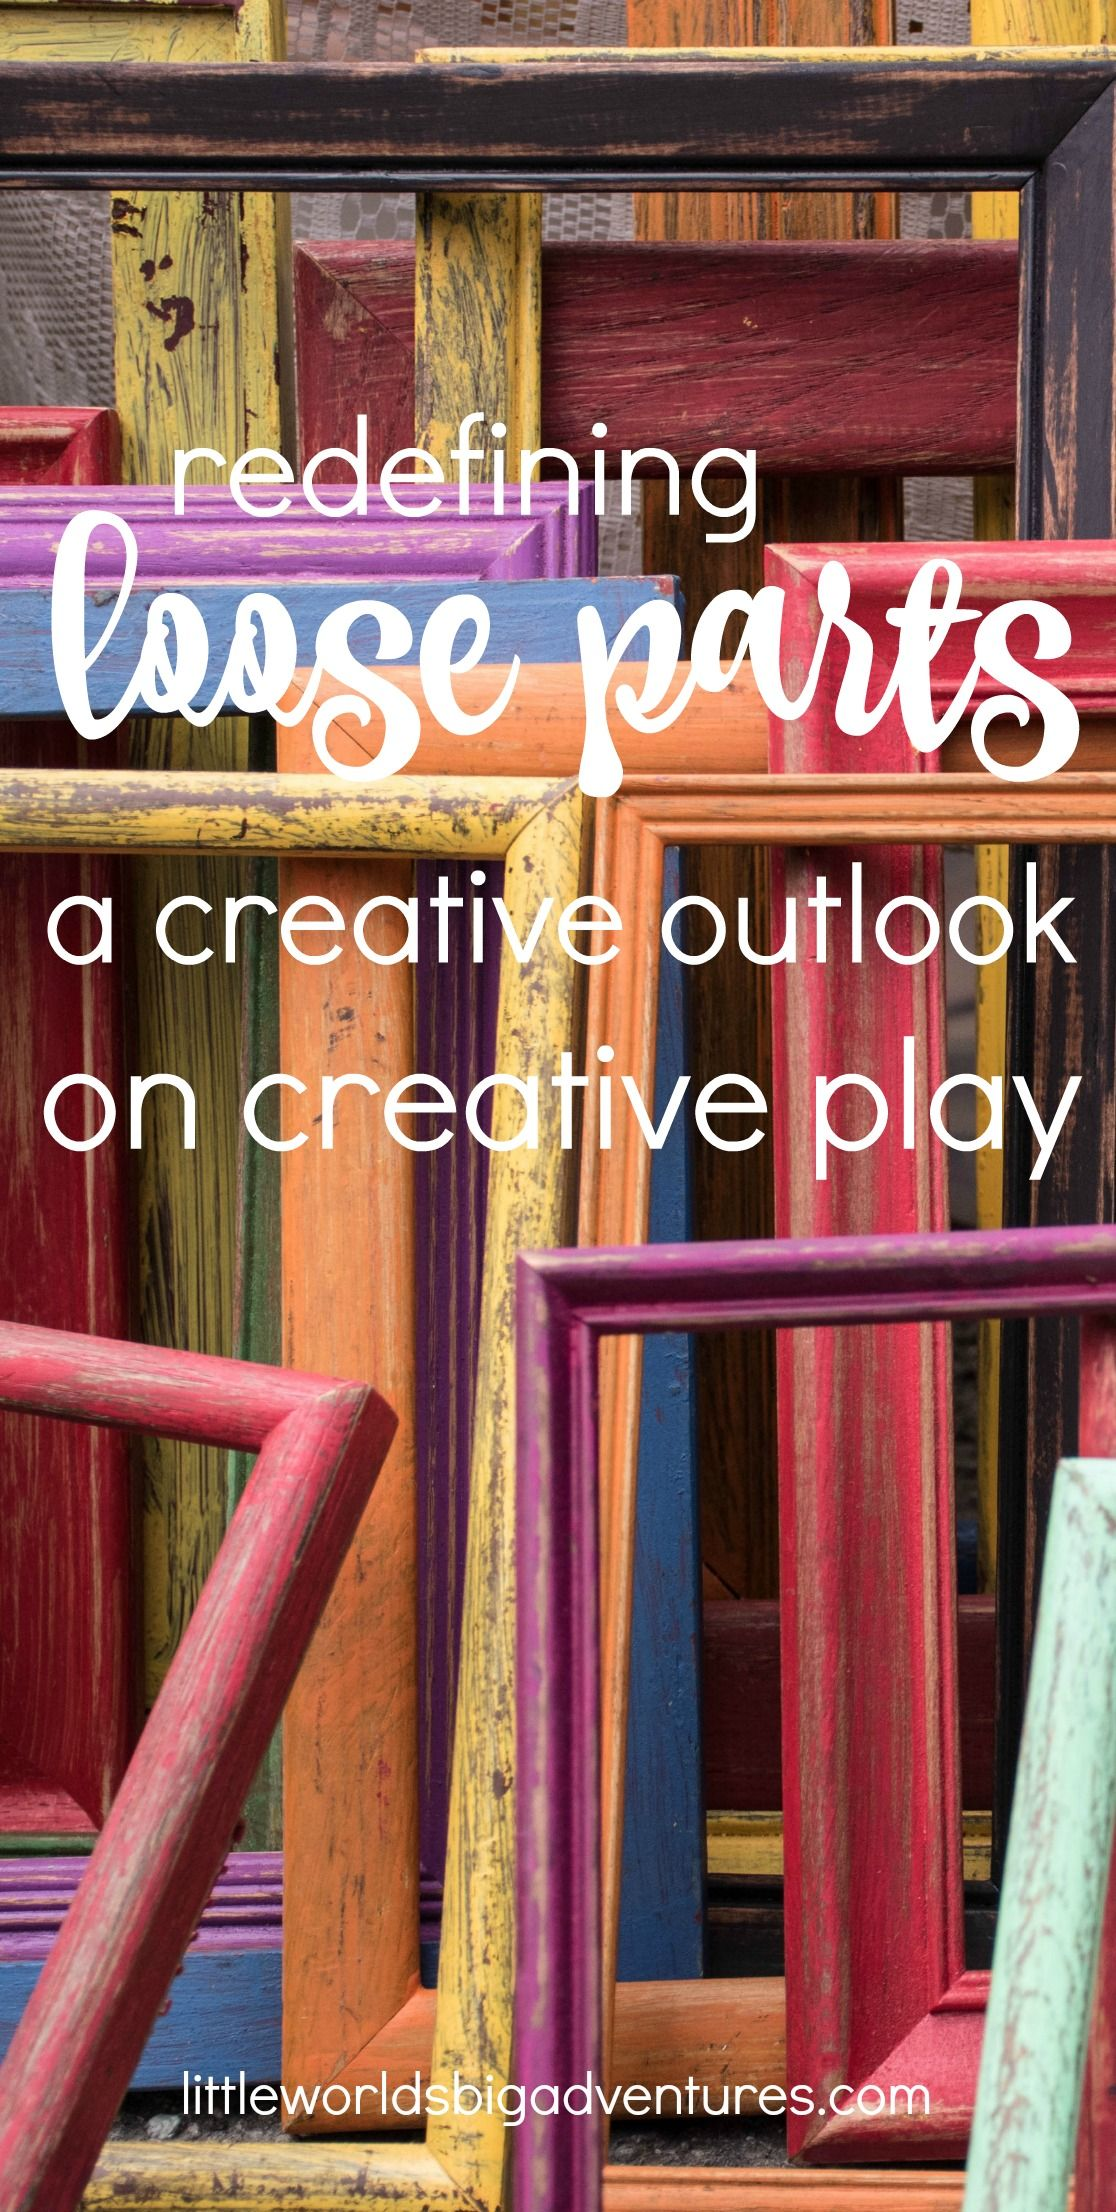 Redefining Loose Parts: a creative outlook on creative play. | Litte Worlds Big Adventures #looseparts #creative #creativity #preschool #parenting #homeschool